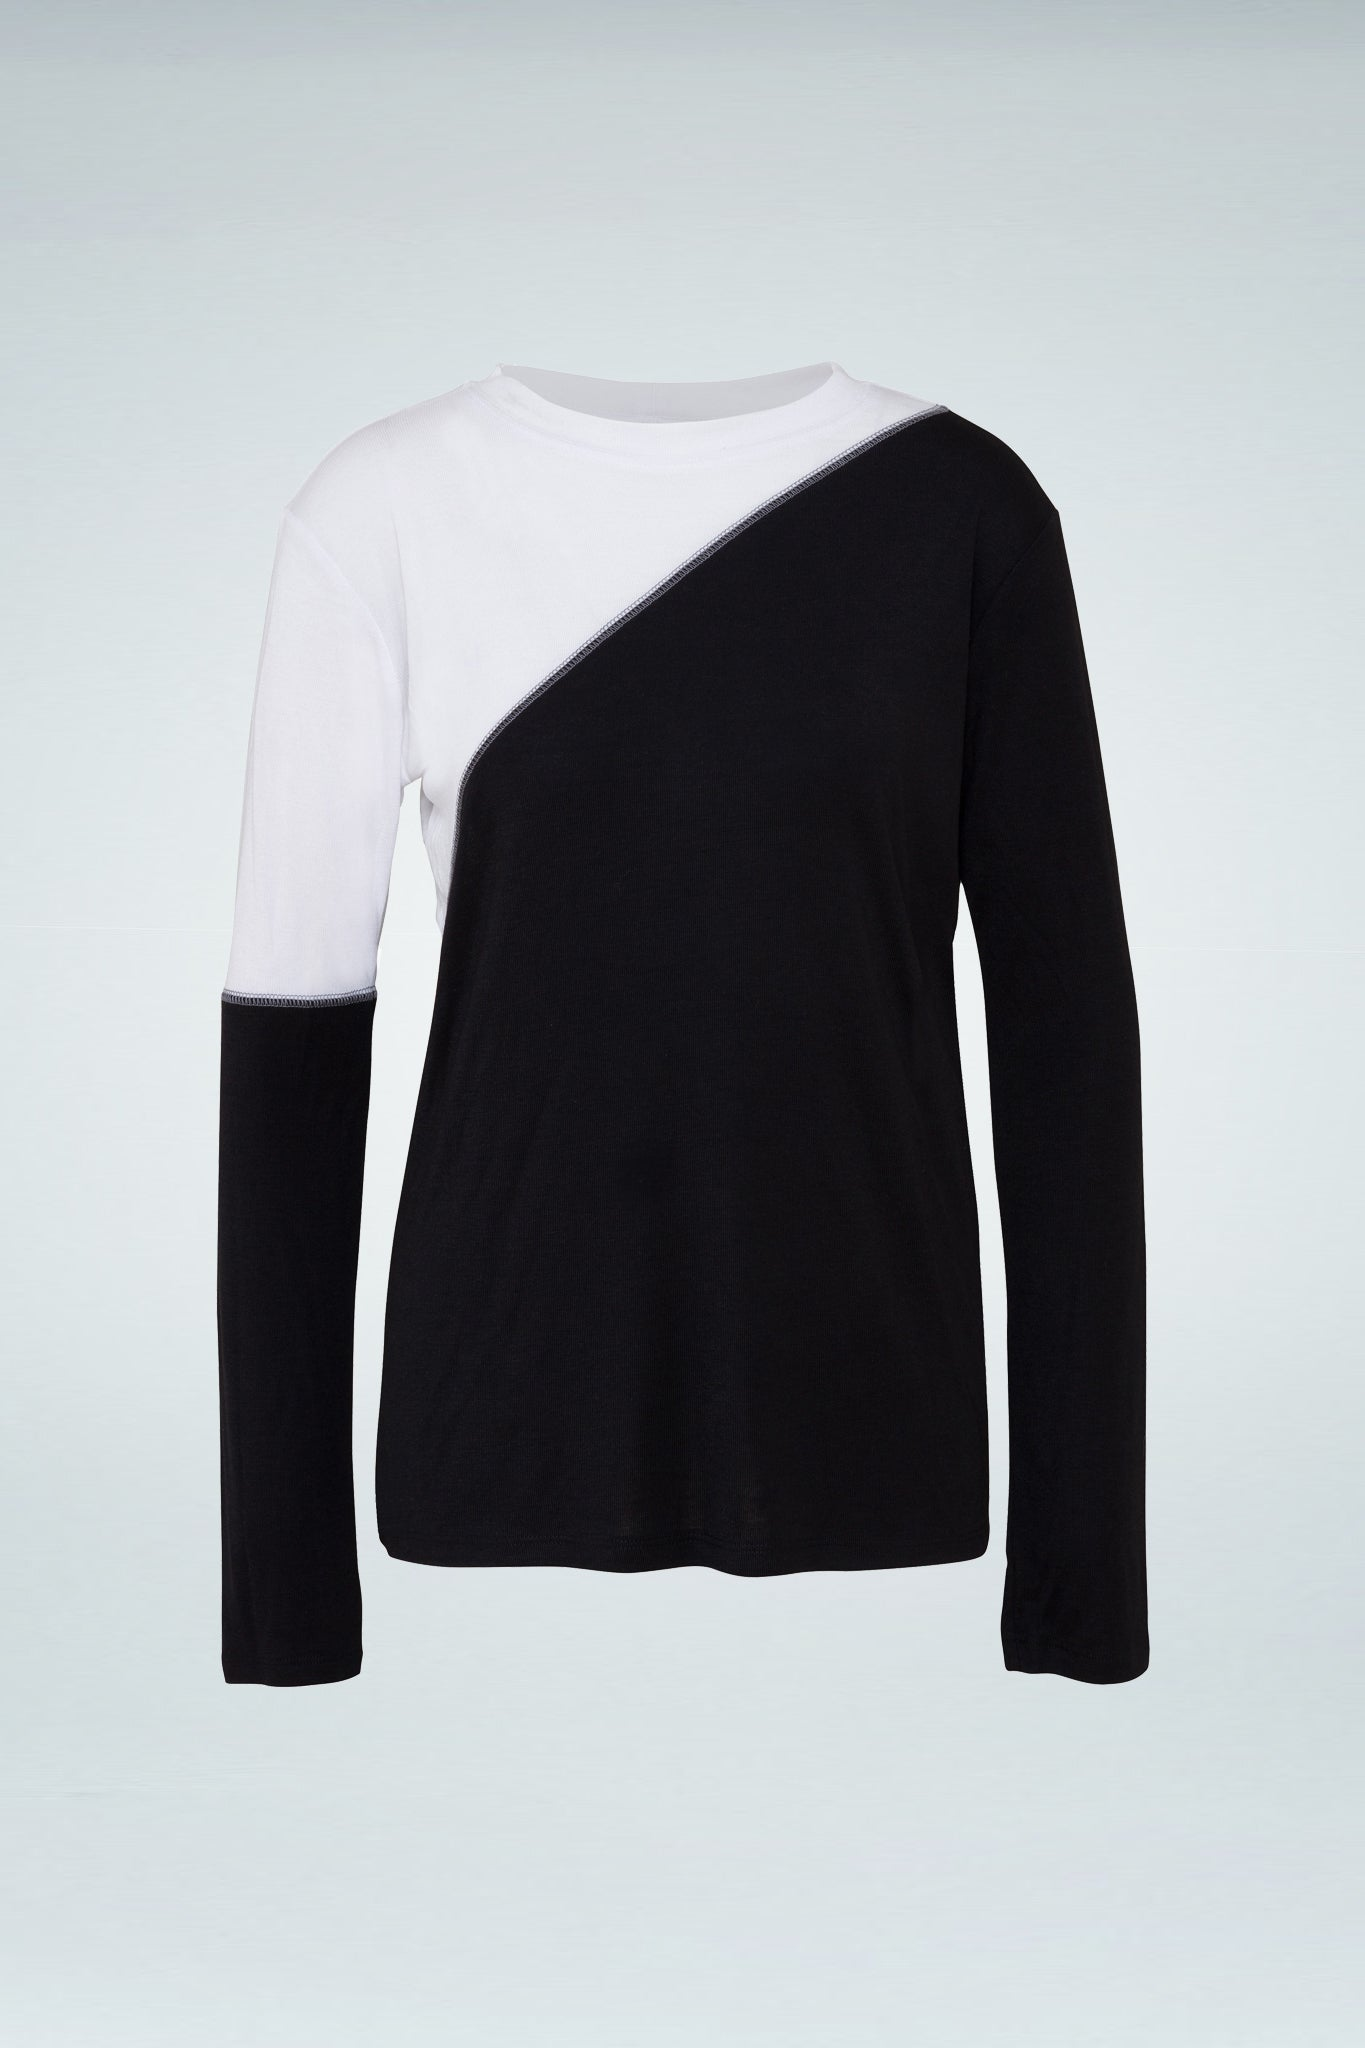 Garni Long Sleeve Blouse - Black/White